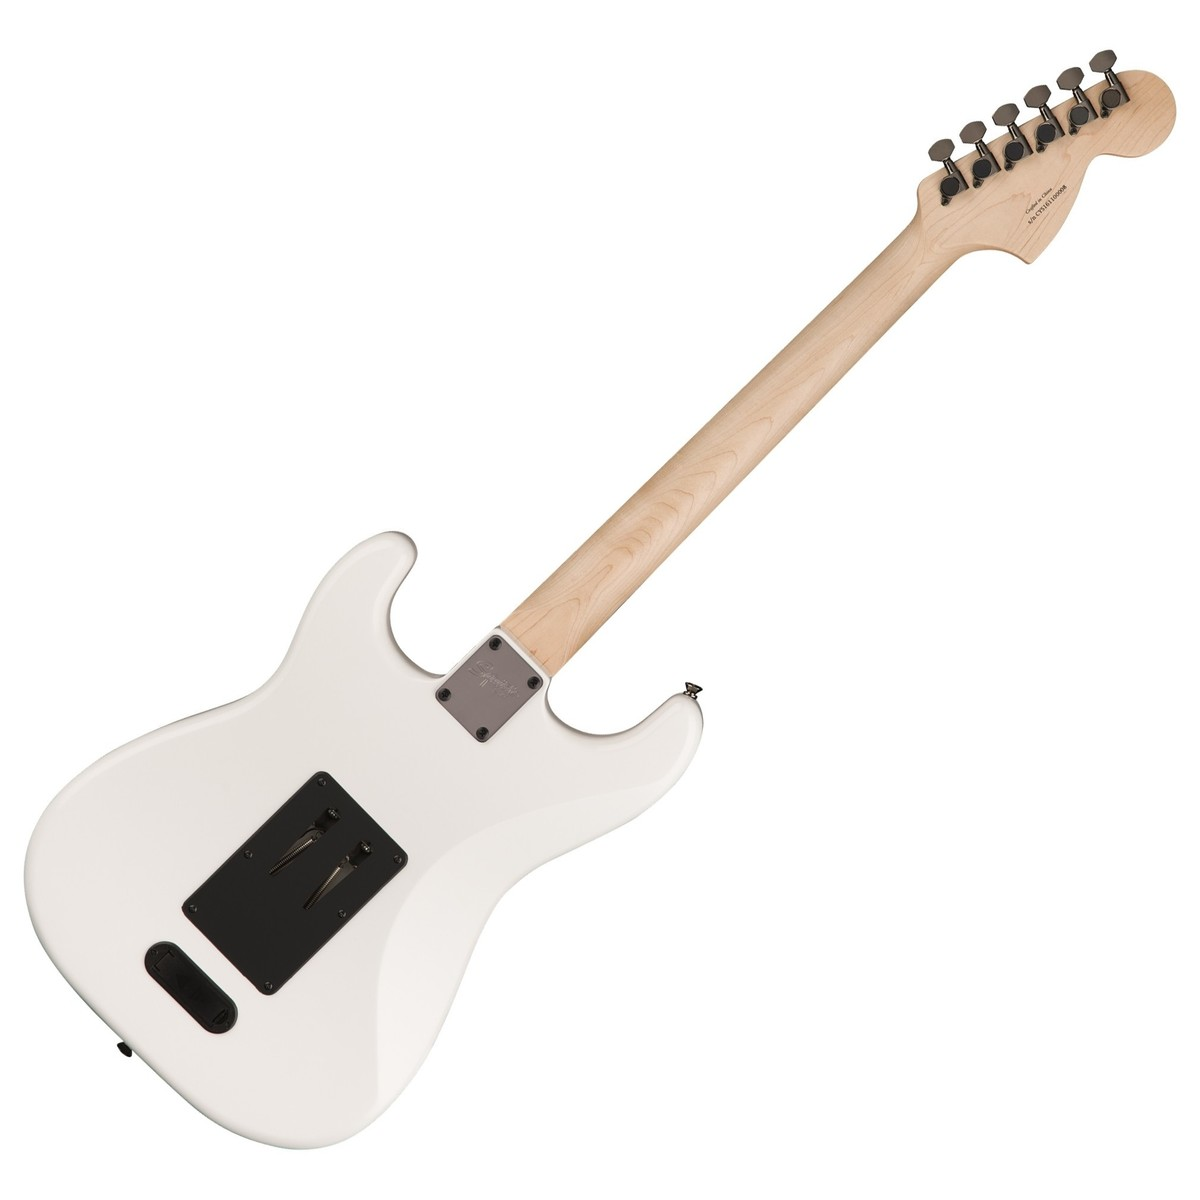 squier contemporary active stratocaster hh olympic white at gear4music. Black Bedroom Furniture Sets. Home Design Ideas